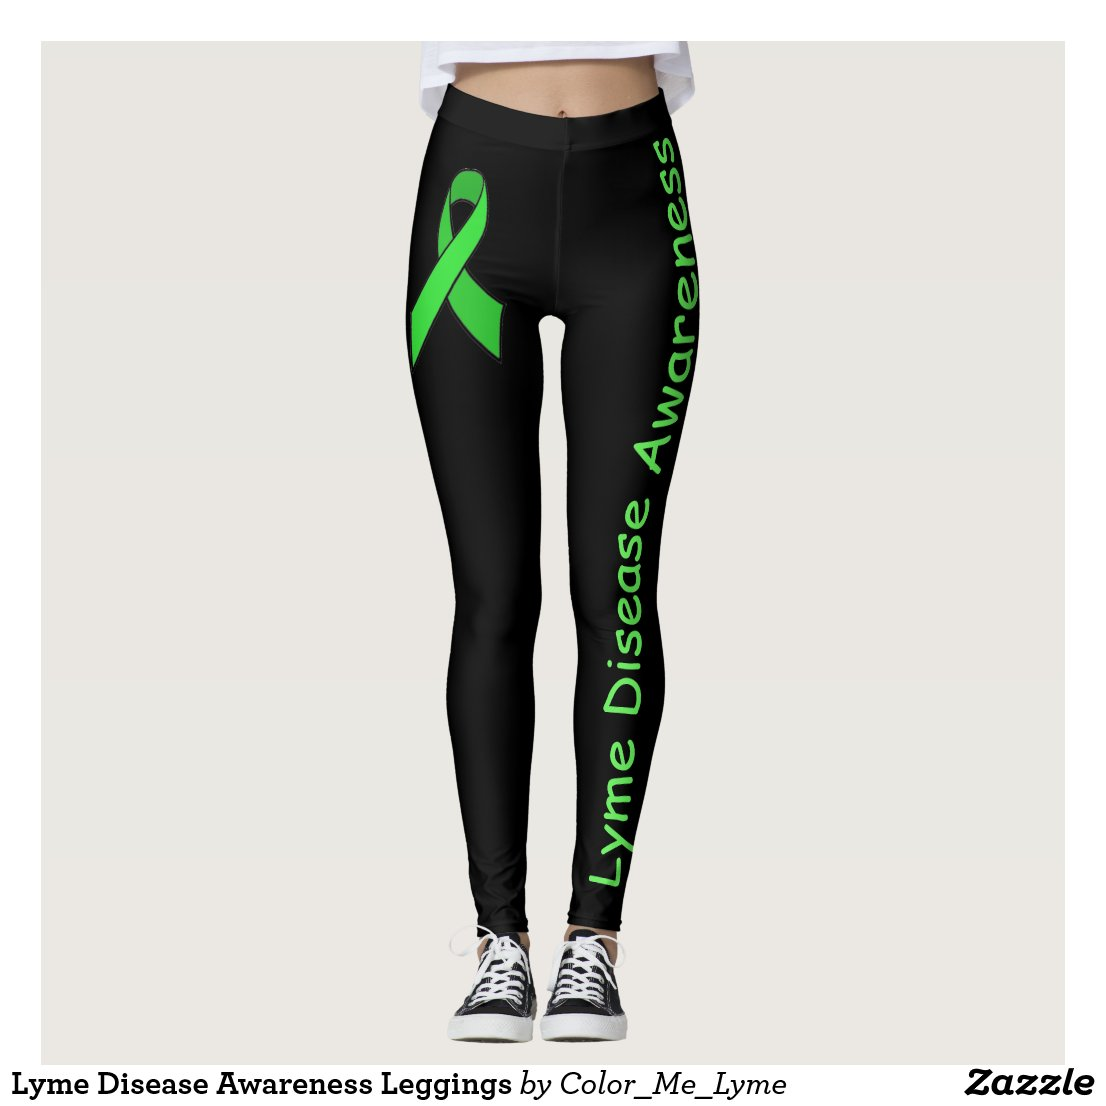 Lyme Disease Awareness Leggings